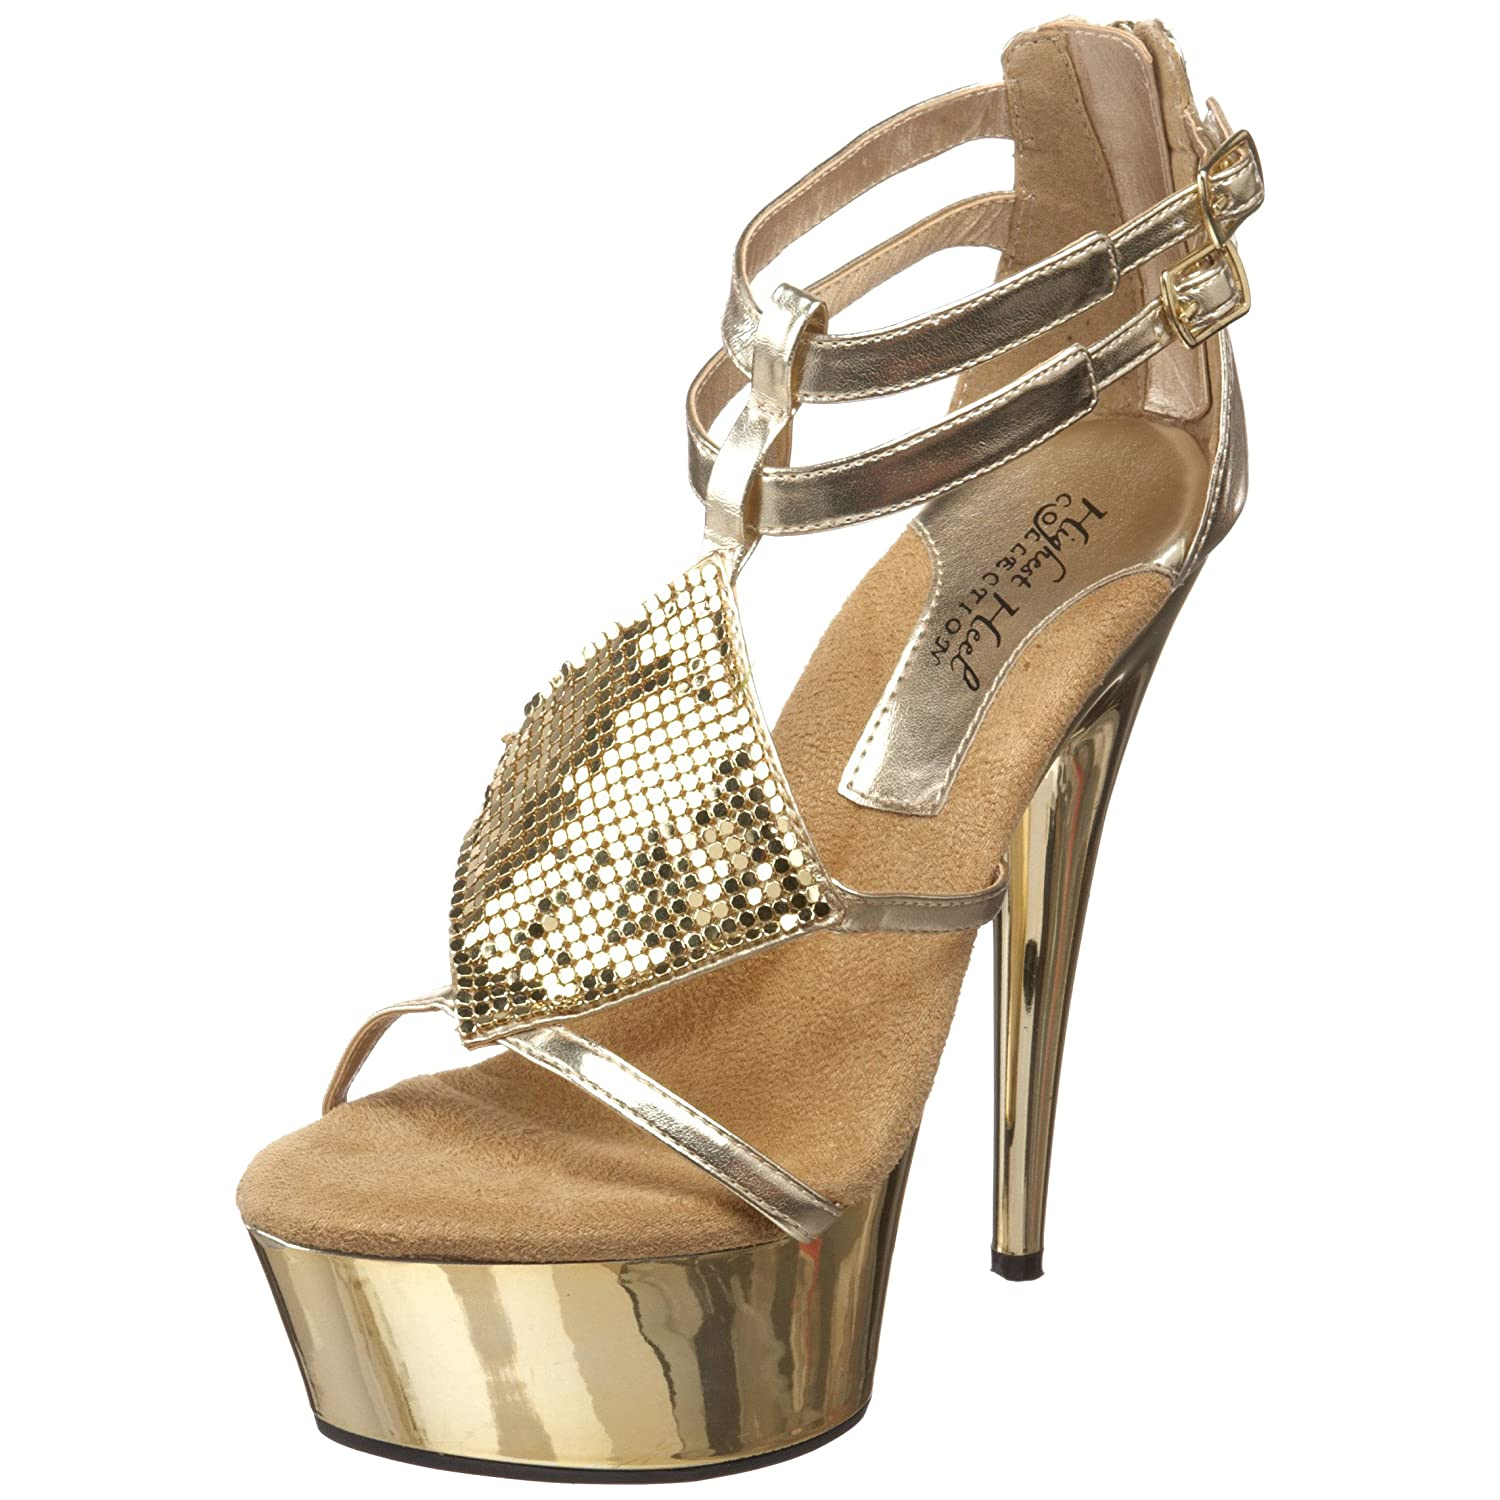 The Highest Heel - Amber-41 Platform Sandal